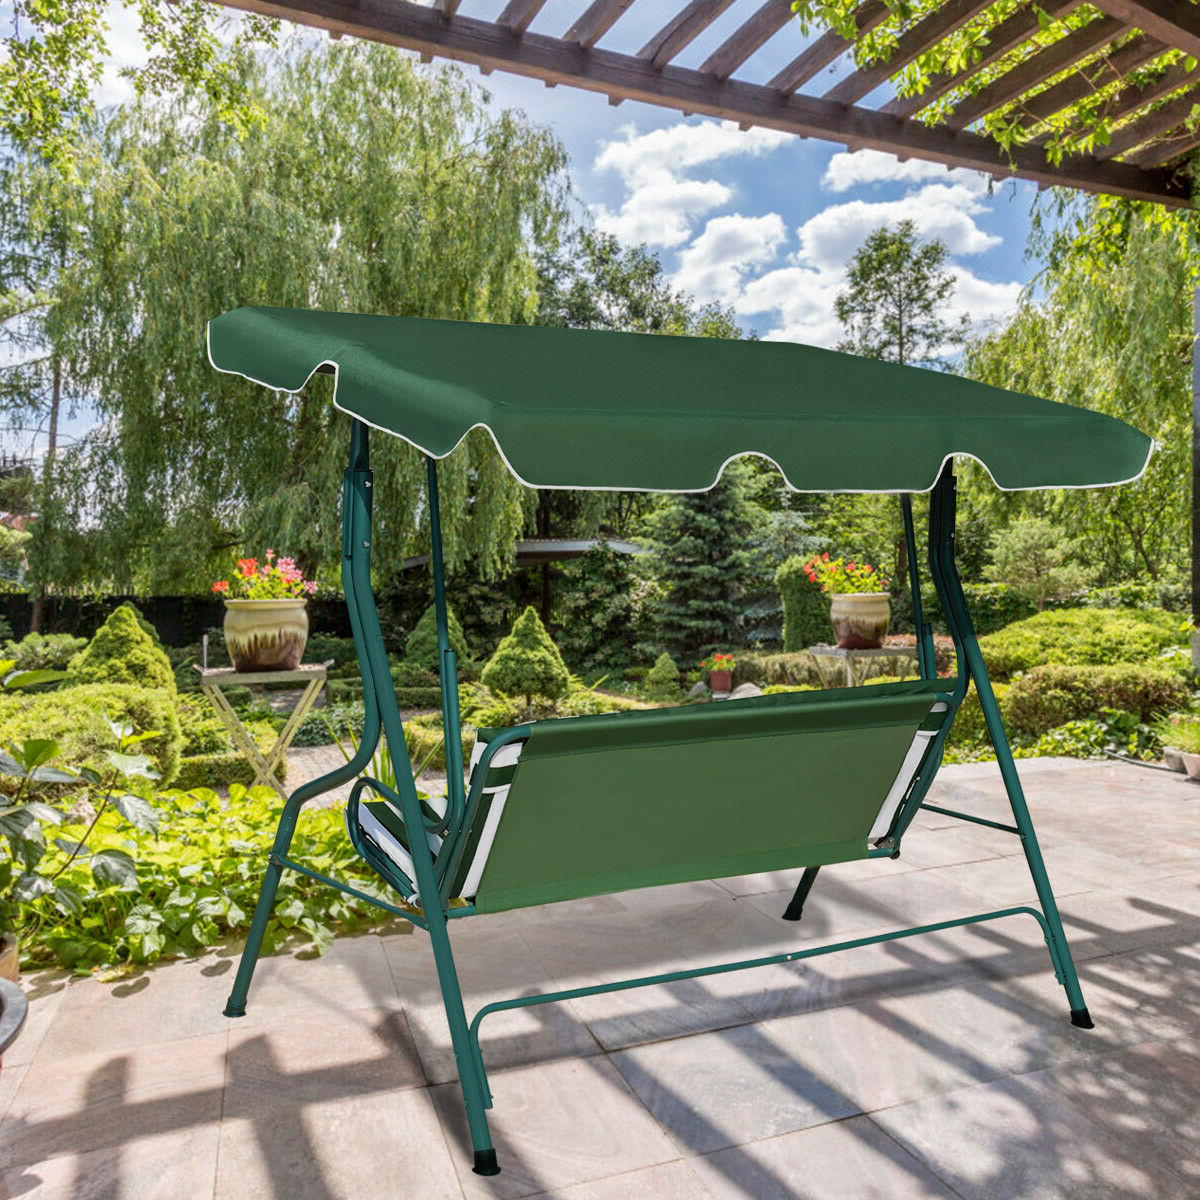 Most Recently Released 3 Seats Patio Canopy Swing Gliders Hammock Cushioned Steel Frame Within Costway 3 Seats Patio Canopy Swing Glider Hammock Cushioned Steel Frame Backyar Green (Gallery 30 of 30)